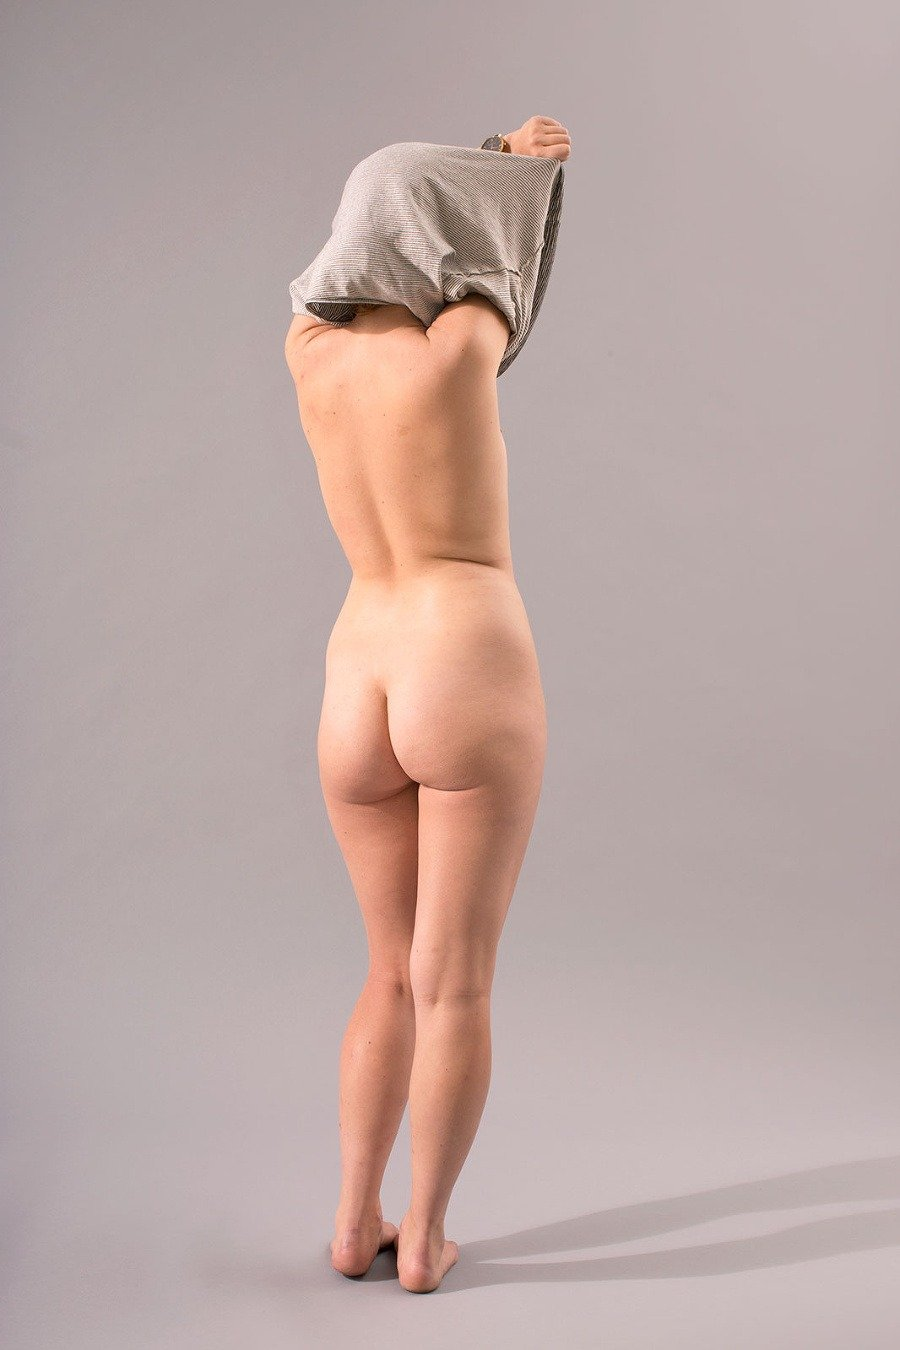 nude-female-butt-galleries